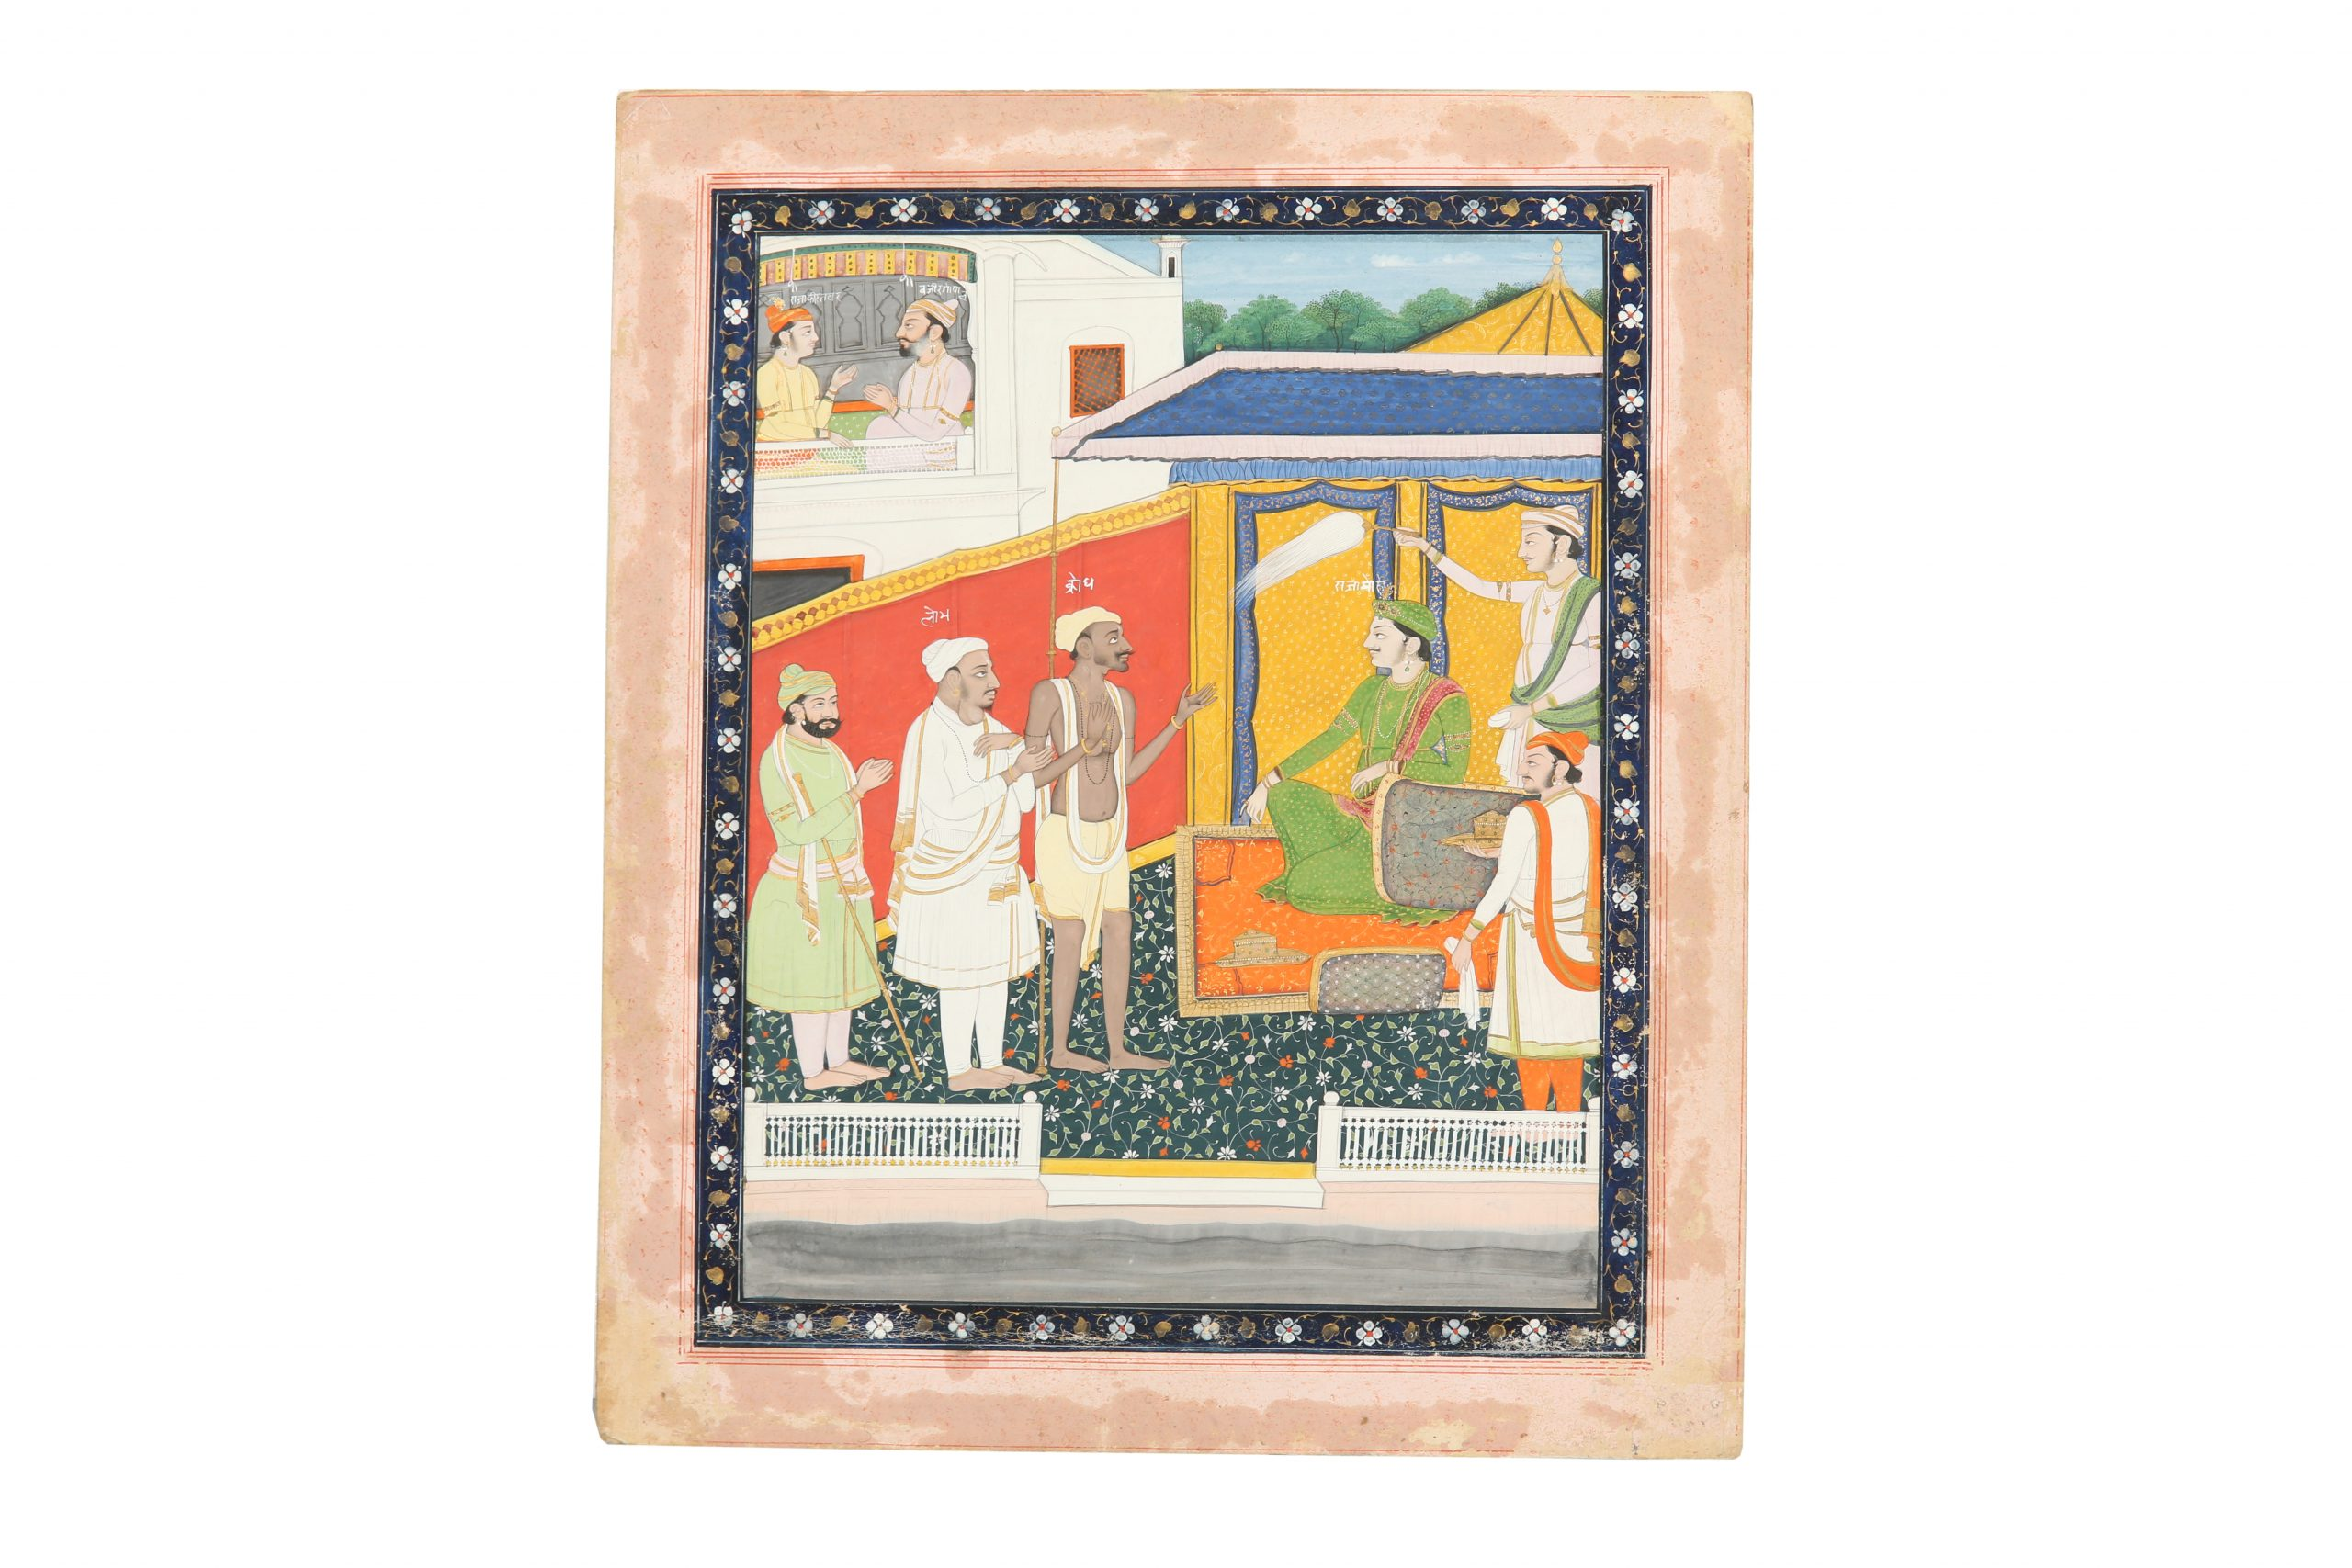 A chastisement scene at a ruler's court. Possibly Guler artist in Kangra, Pahari Hills, Northern India, ca. 1820 - 1830. Estimate £1,000 - £1,200